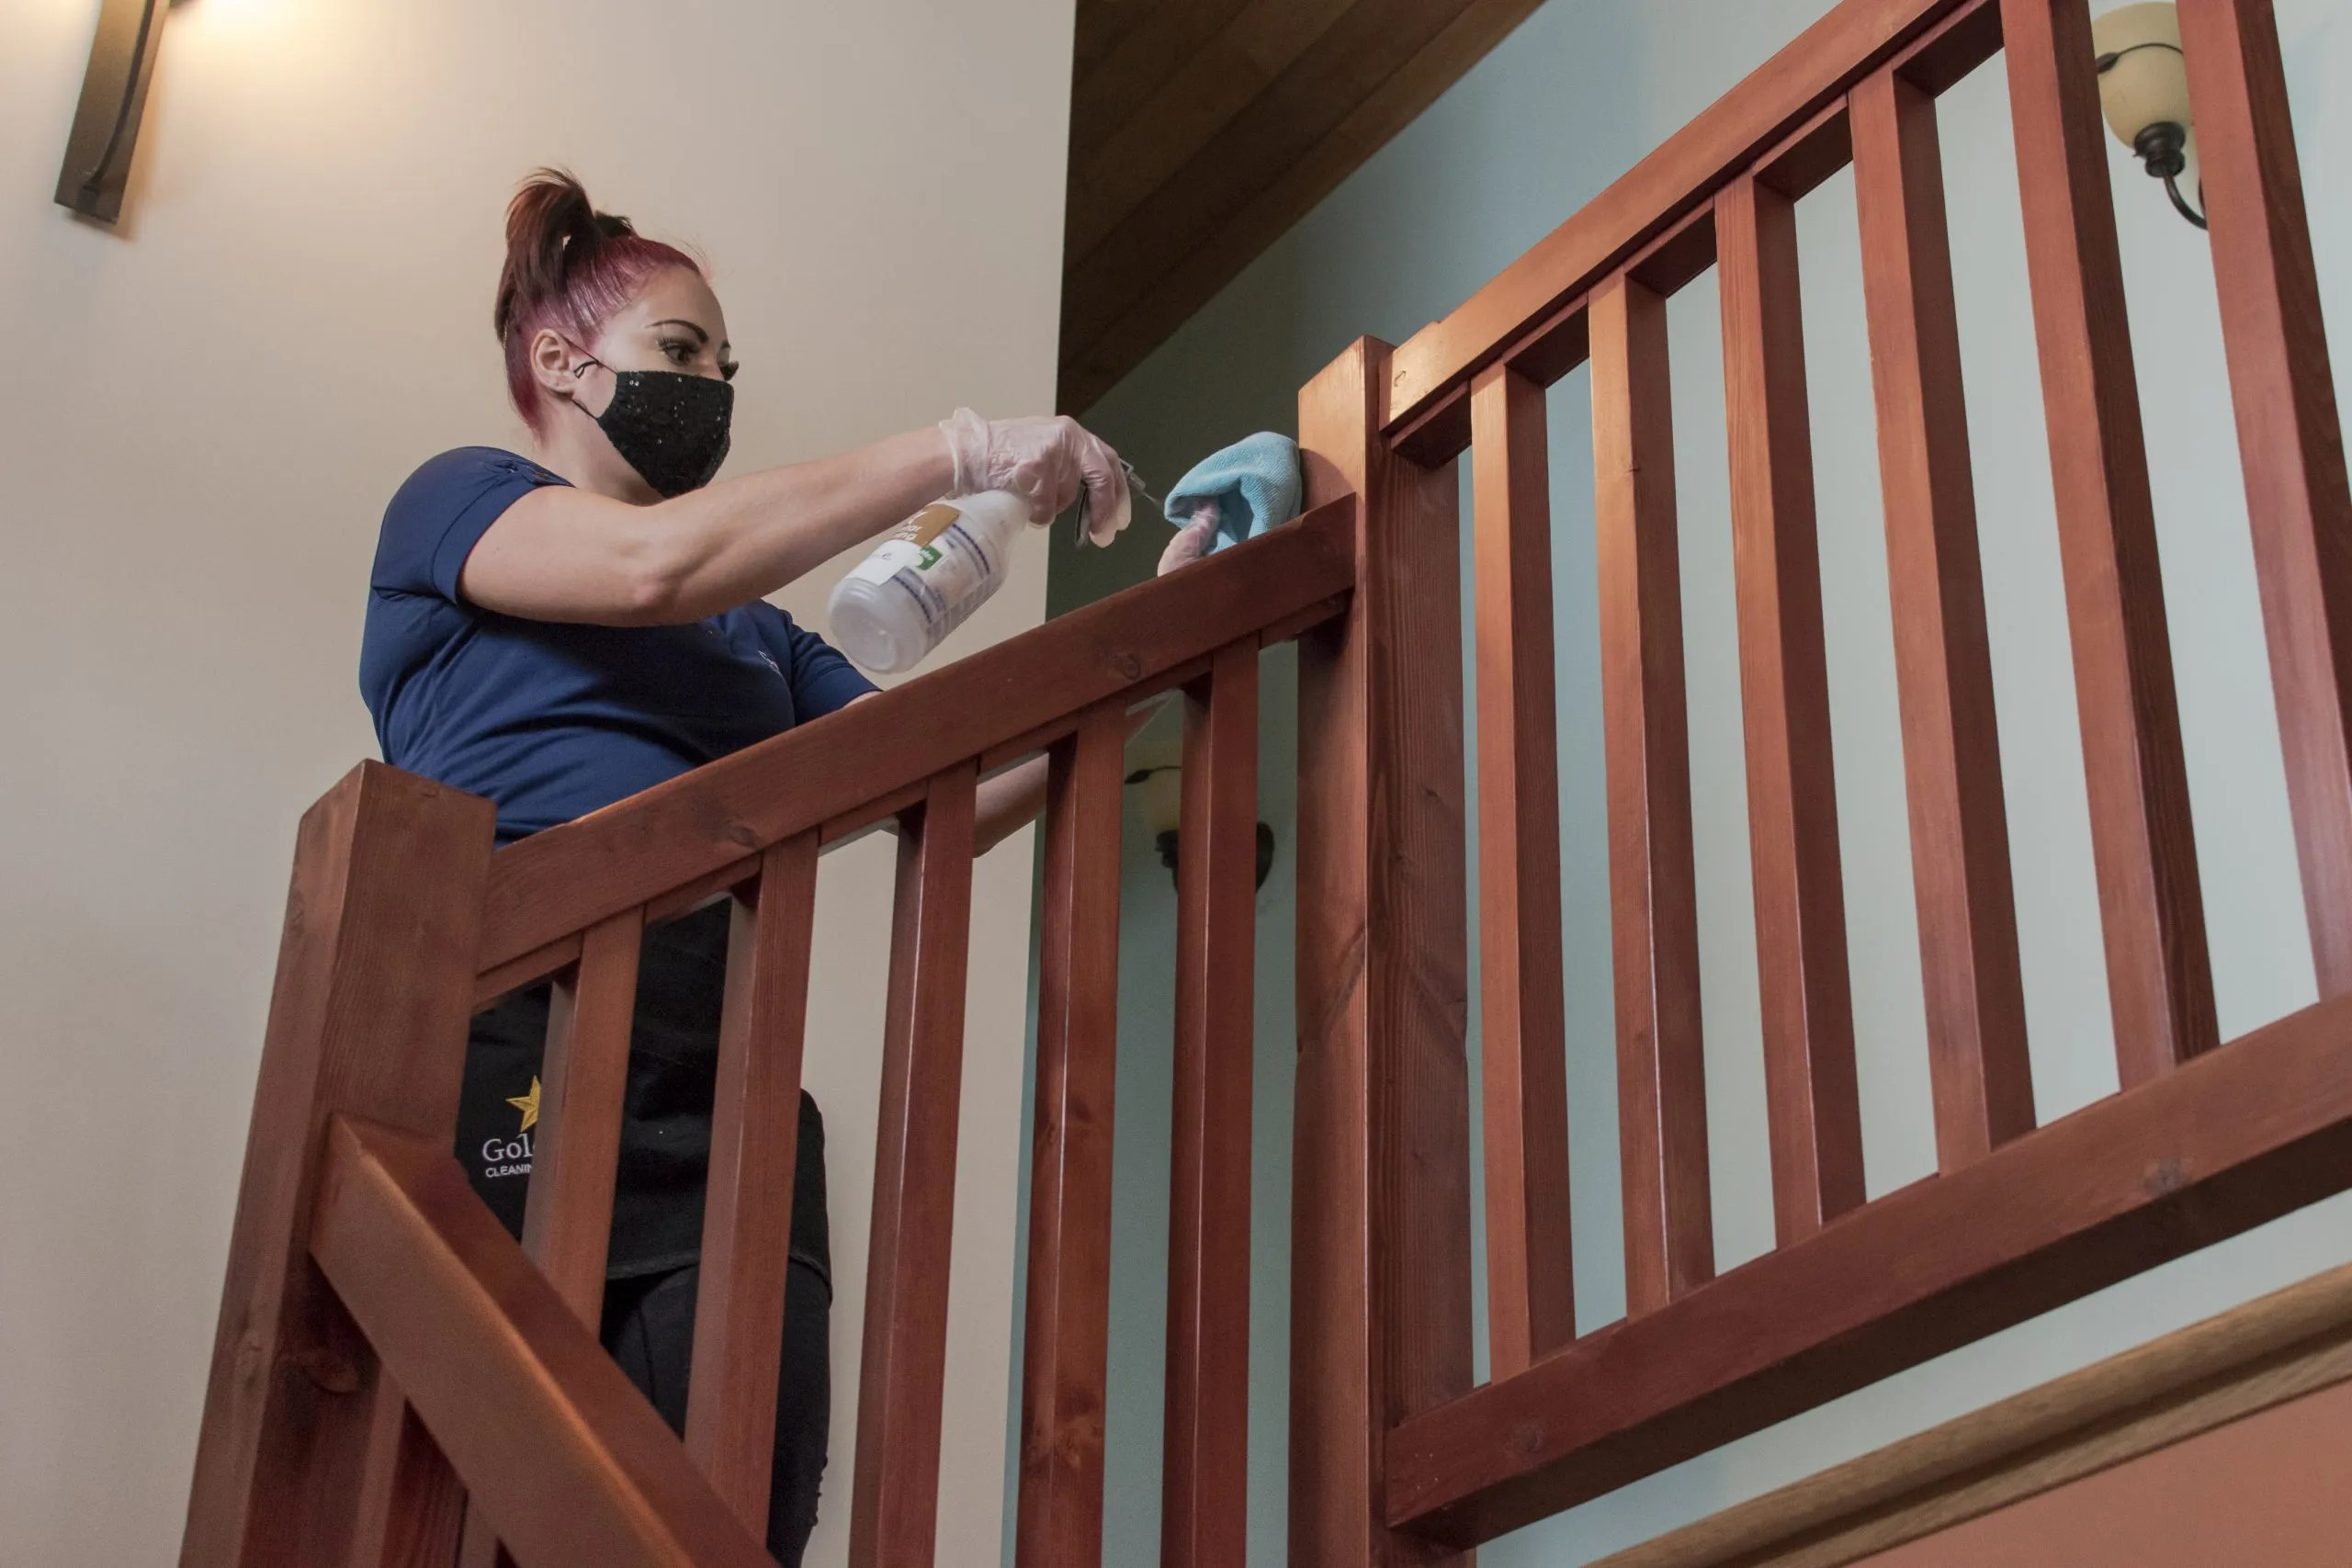 emplyee-cleaning-bannister